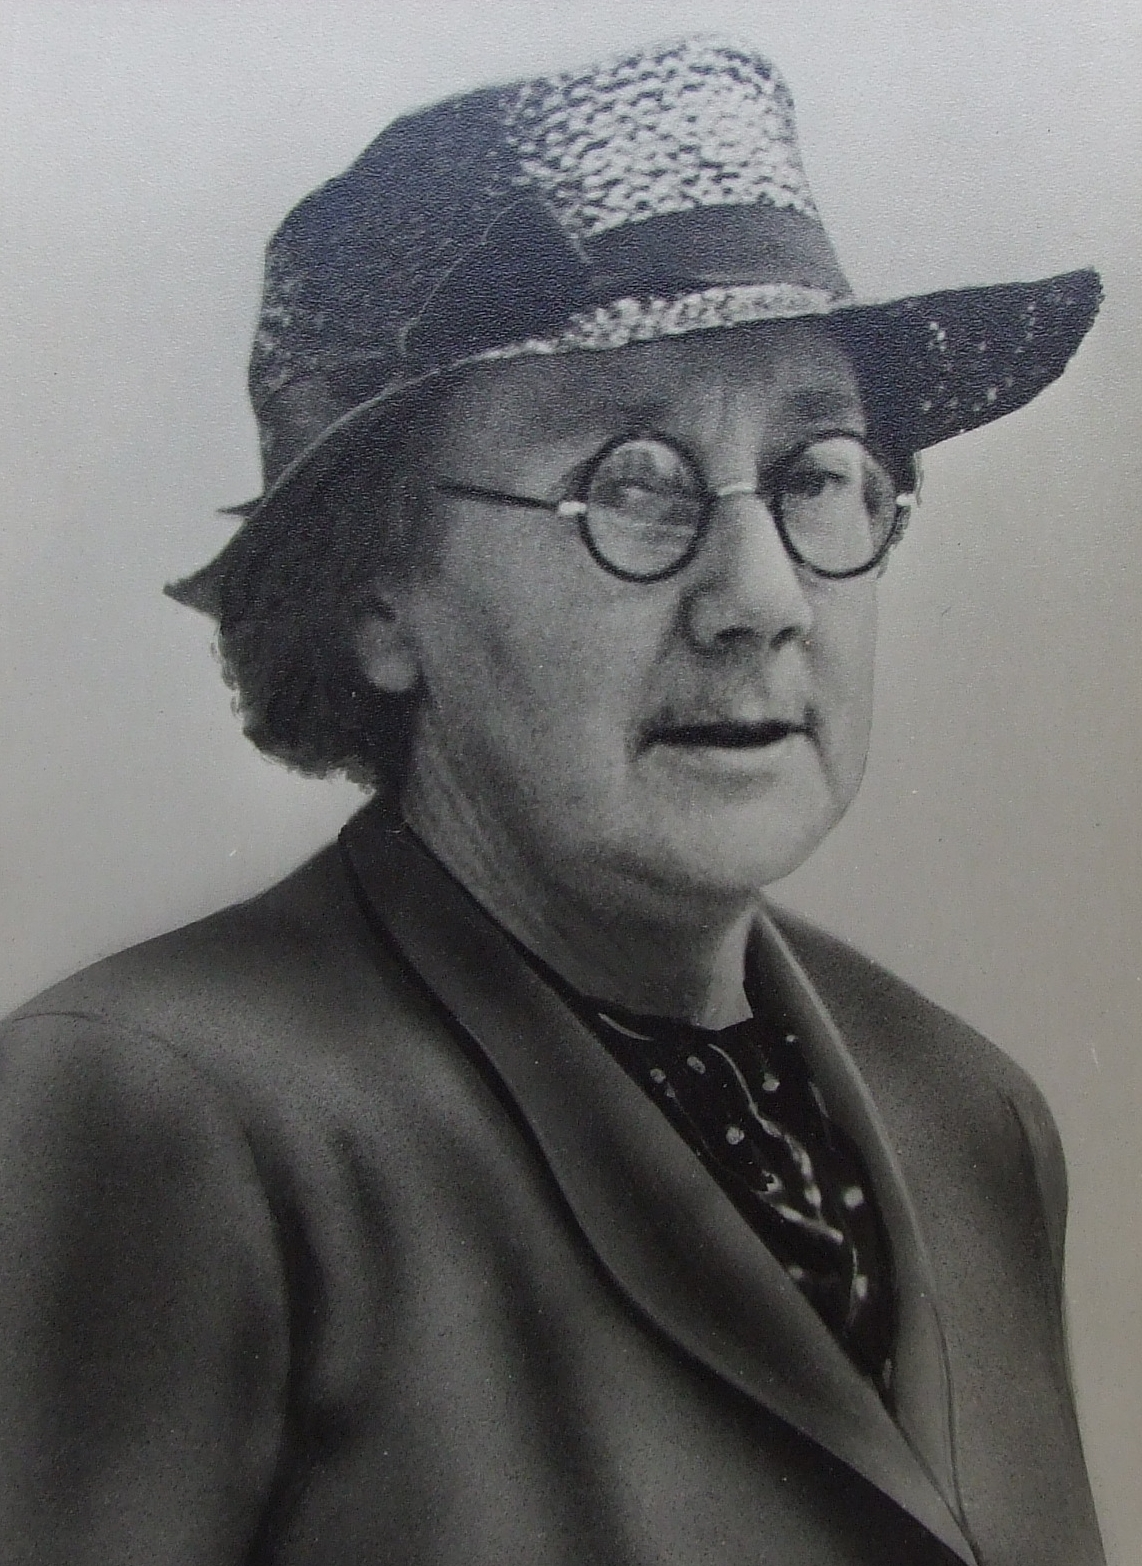 Dr. Dorothy Price (Image of MS SU-8-3-18 provided by RCPI) 2